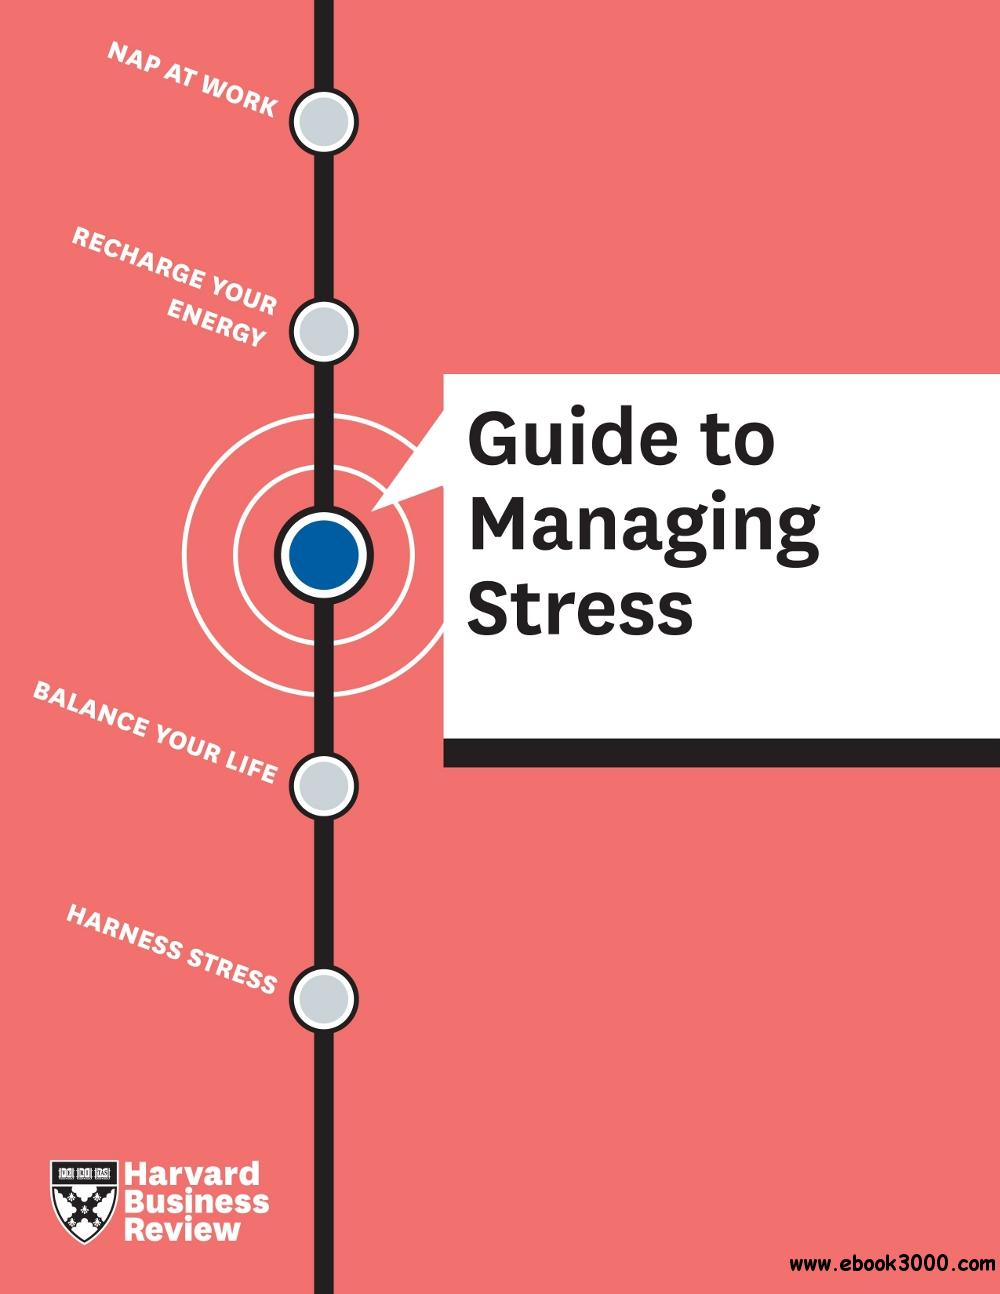 HBR Guide to Managing Stress